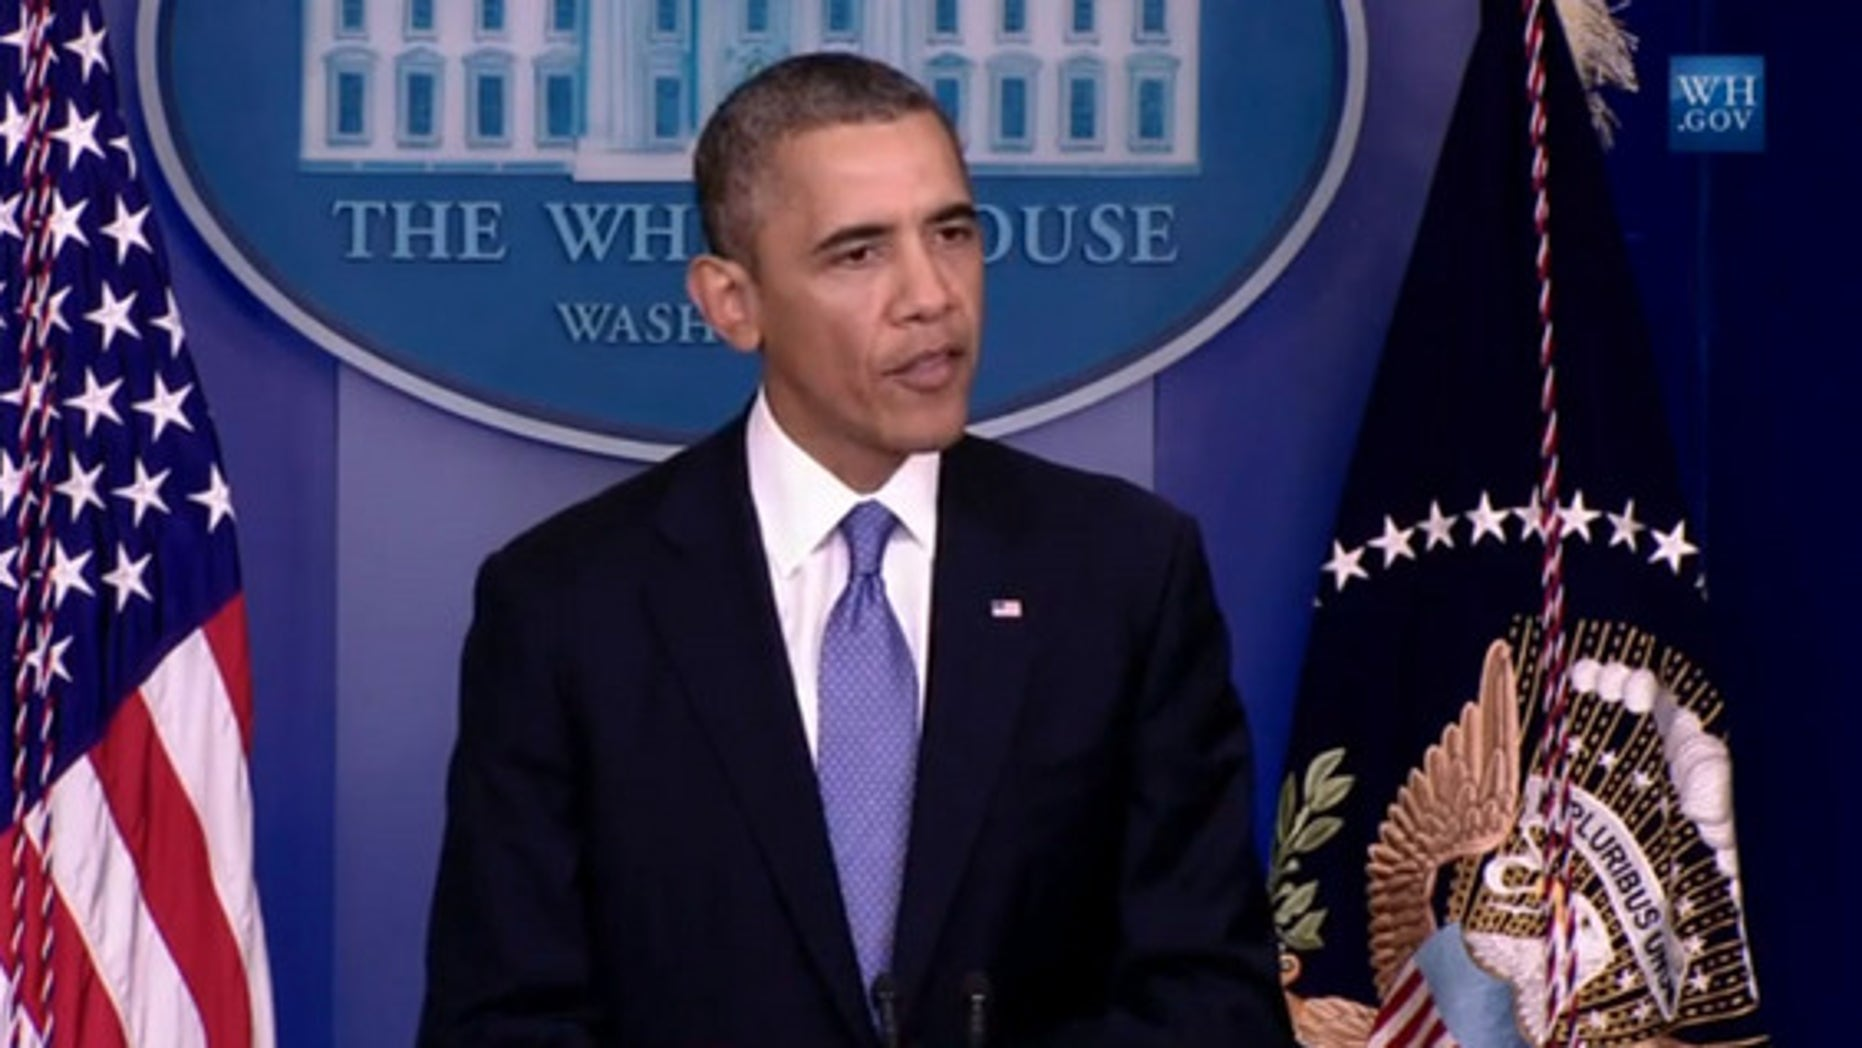 U.S. President Barack Obama gives a statement to reporters on Sept. 29, 2013 to discuss the government shutdown of Oct. 1, which will shut down much of NASA.